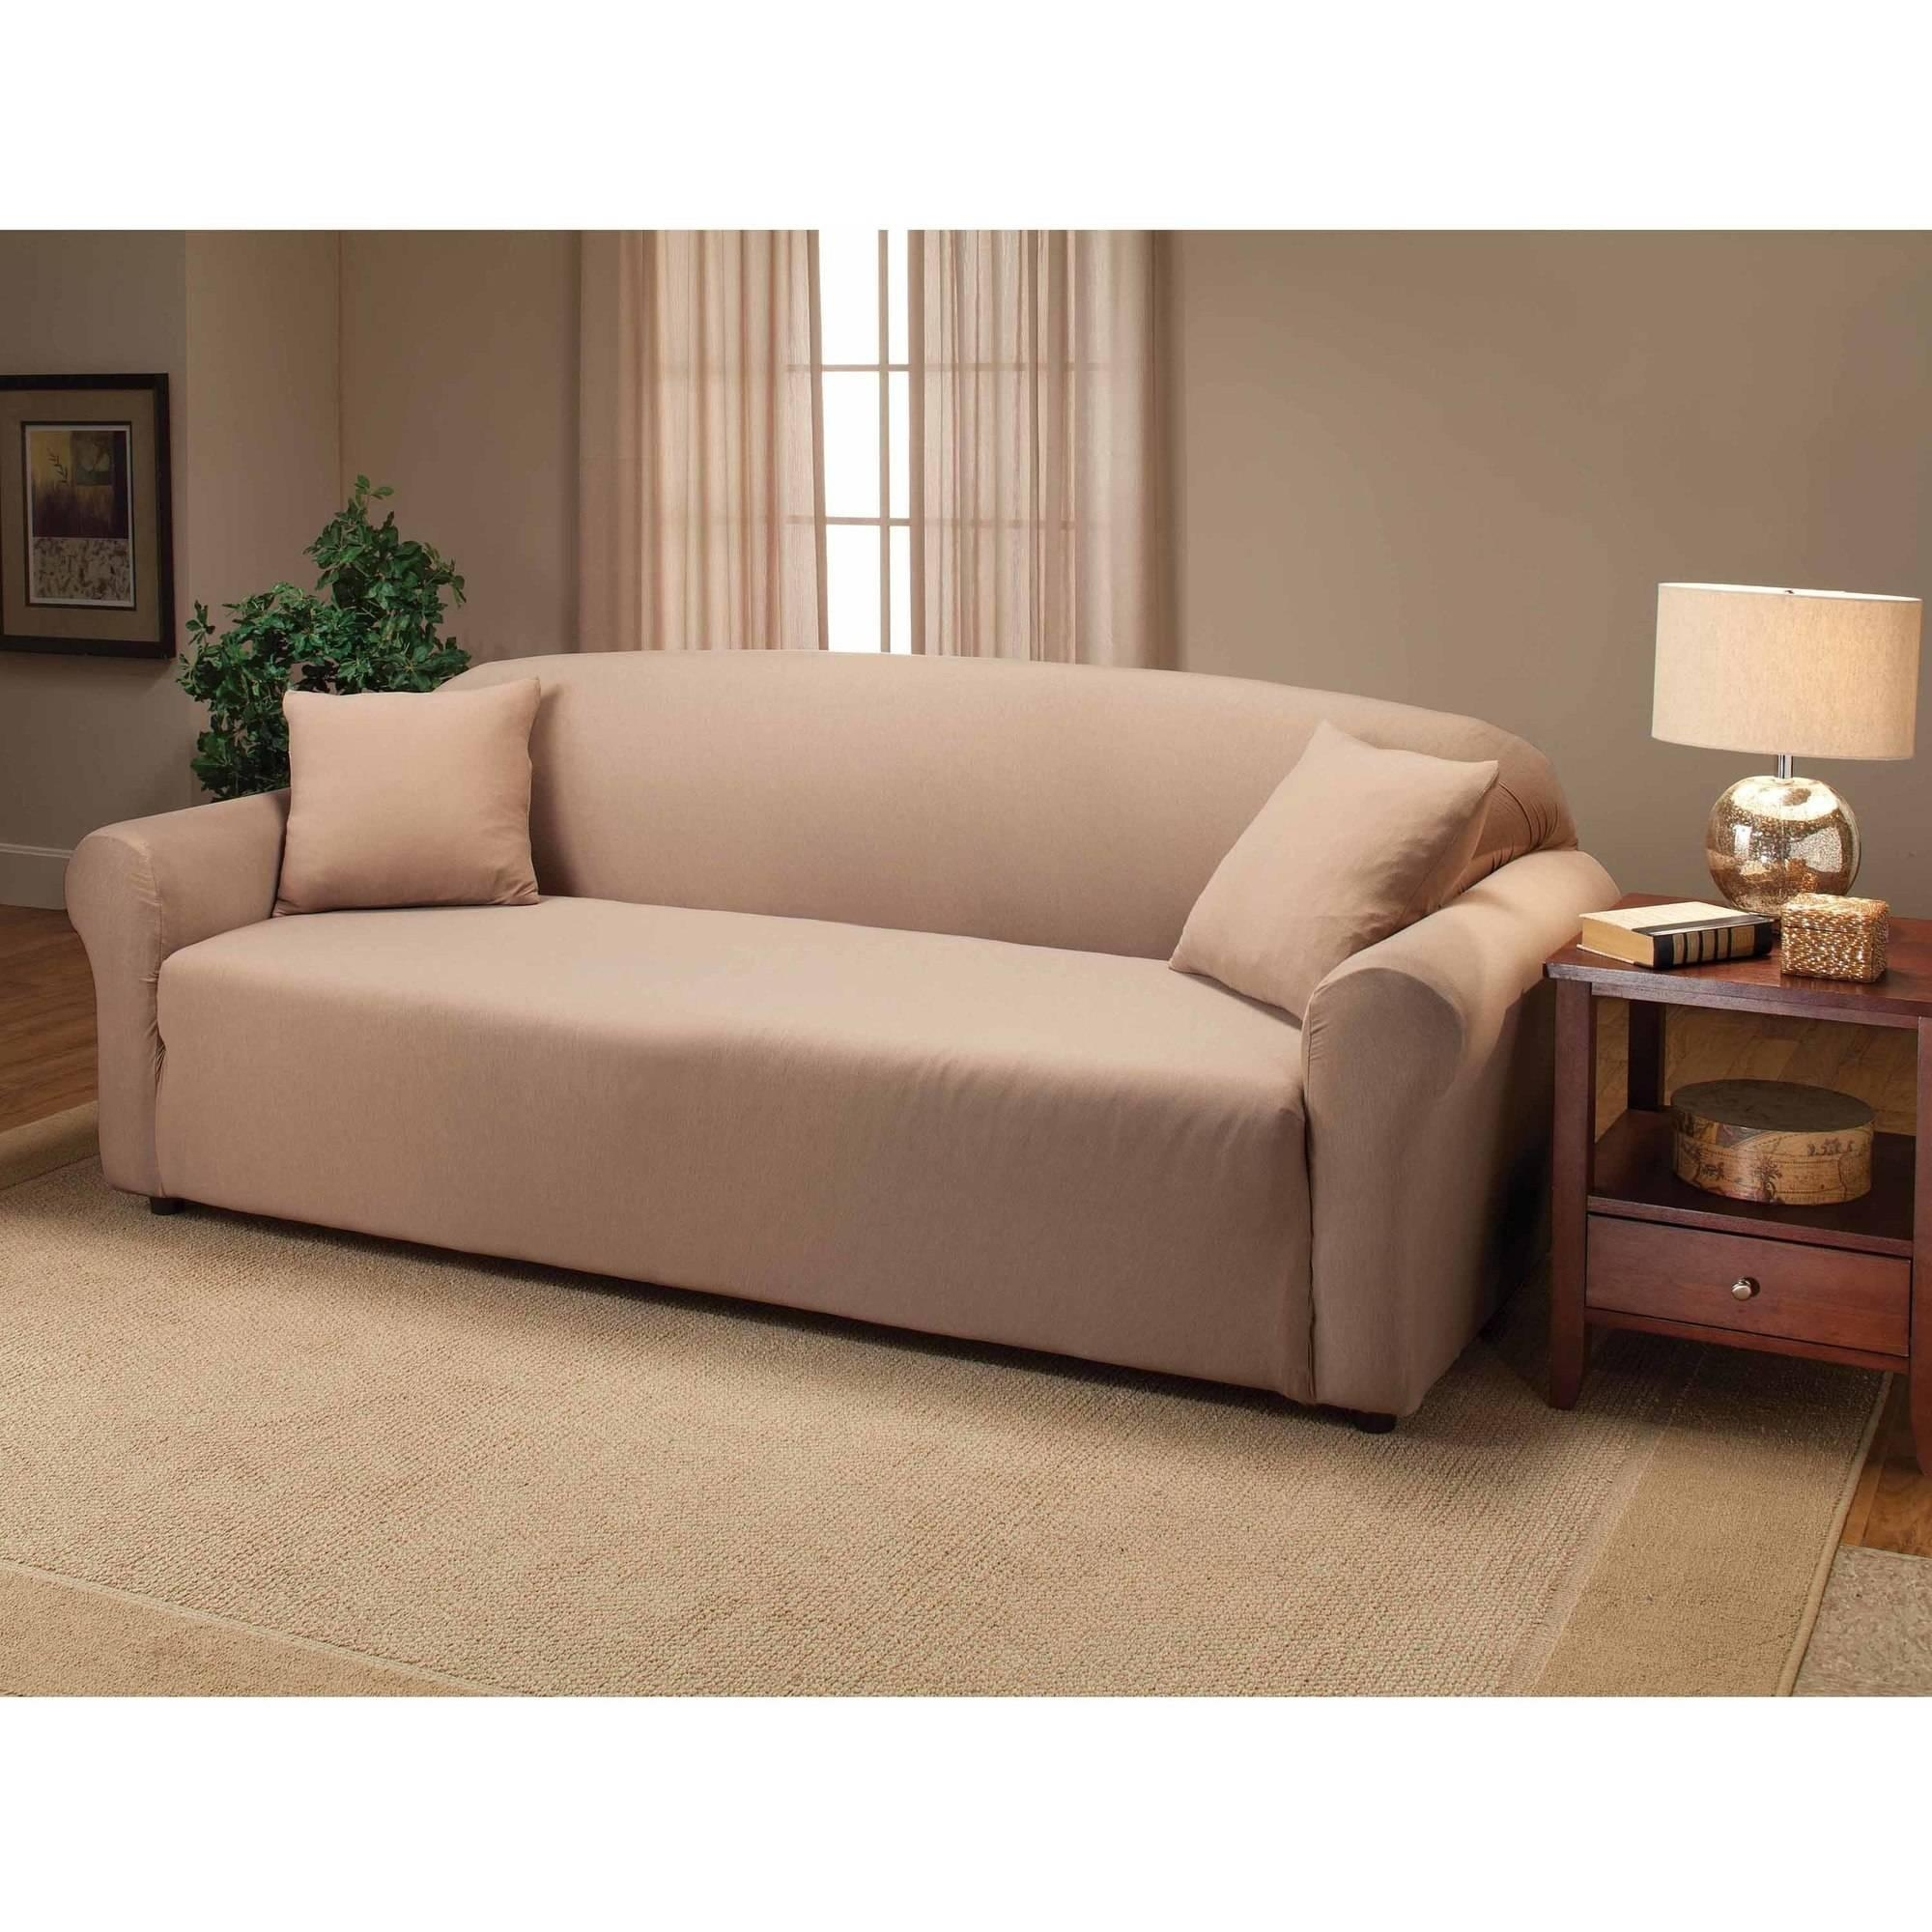 Jersey Stretch Sofa Slipcover – Walmart With Stretch Slipcovers For Sofas (Image 6 of 20)